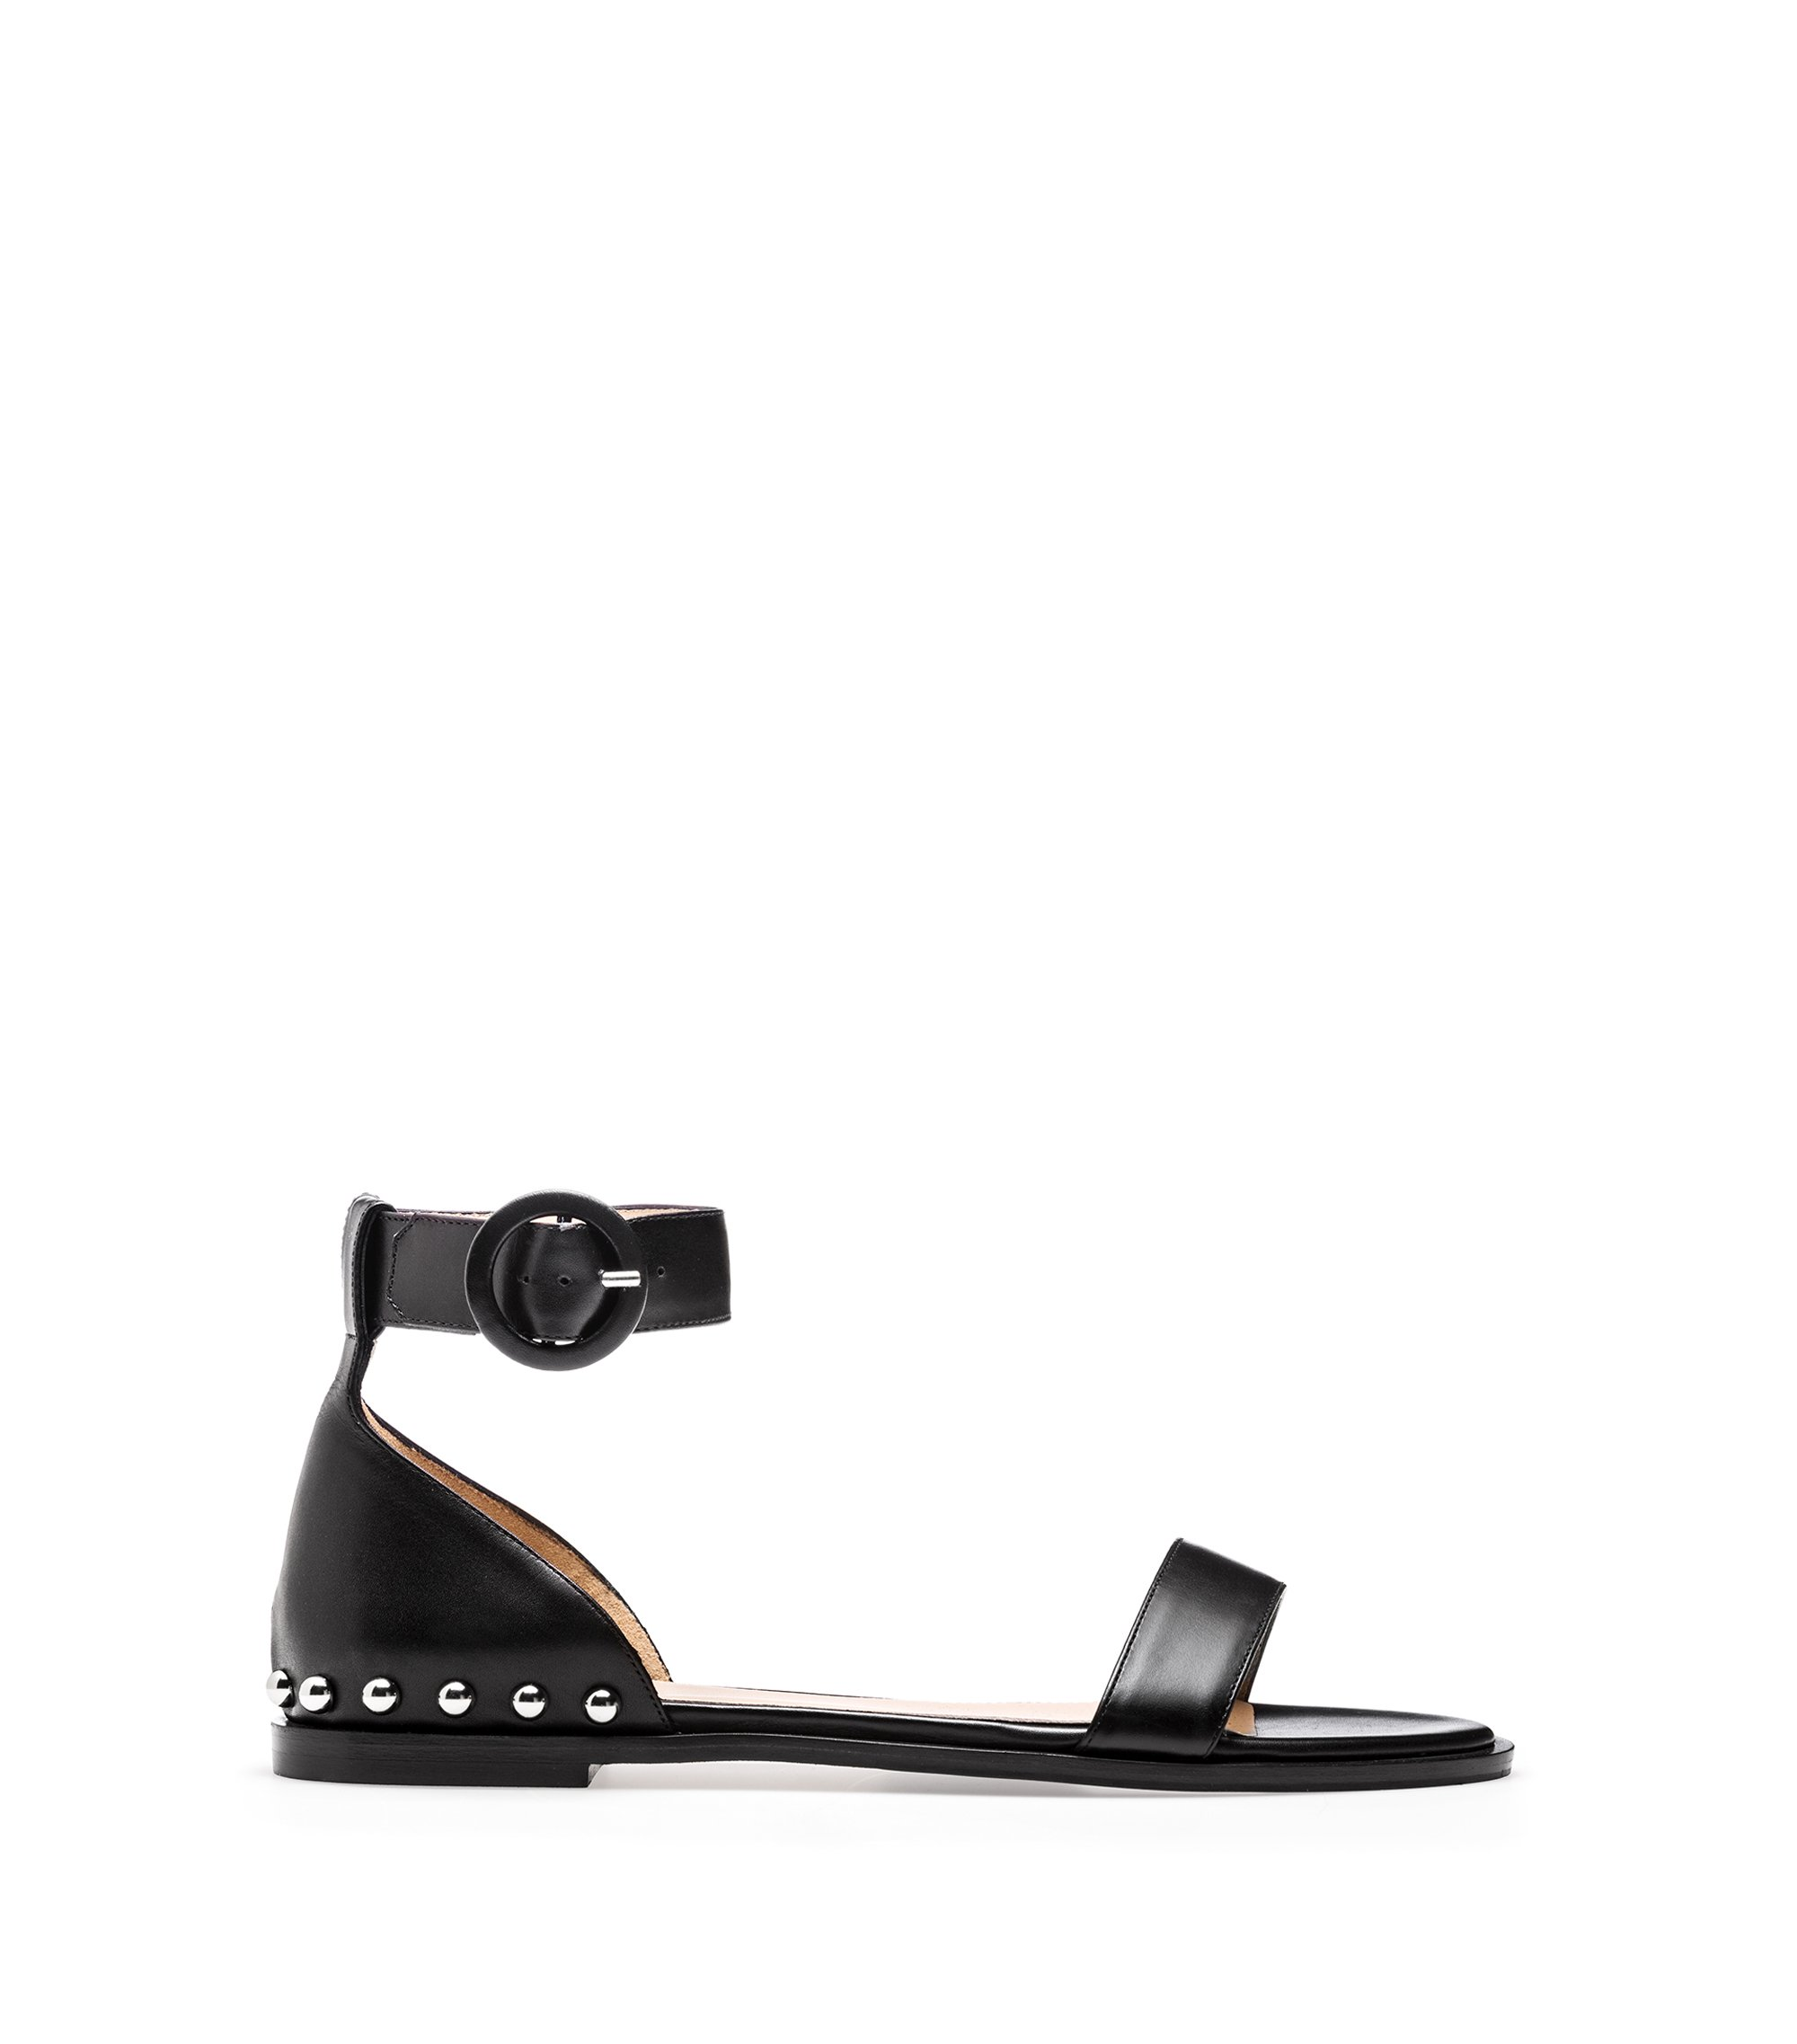 Calf-leather sandals with metal stud detailing, Black